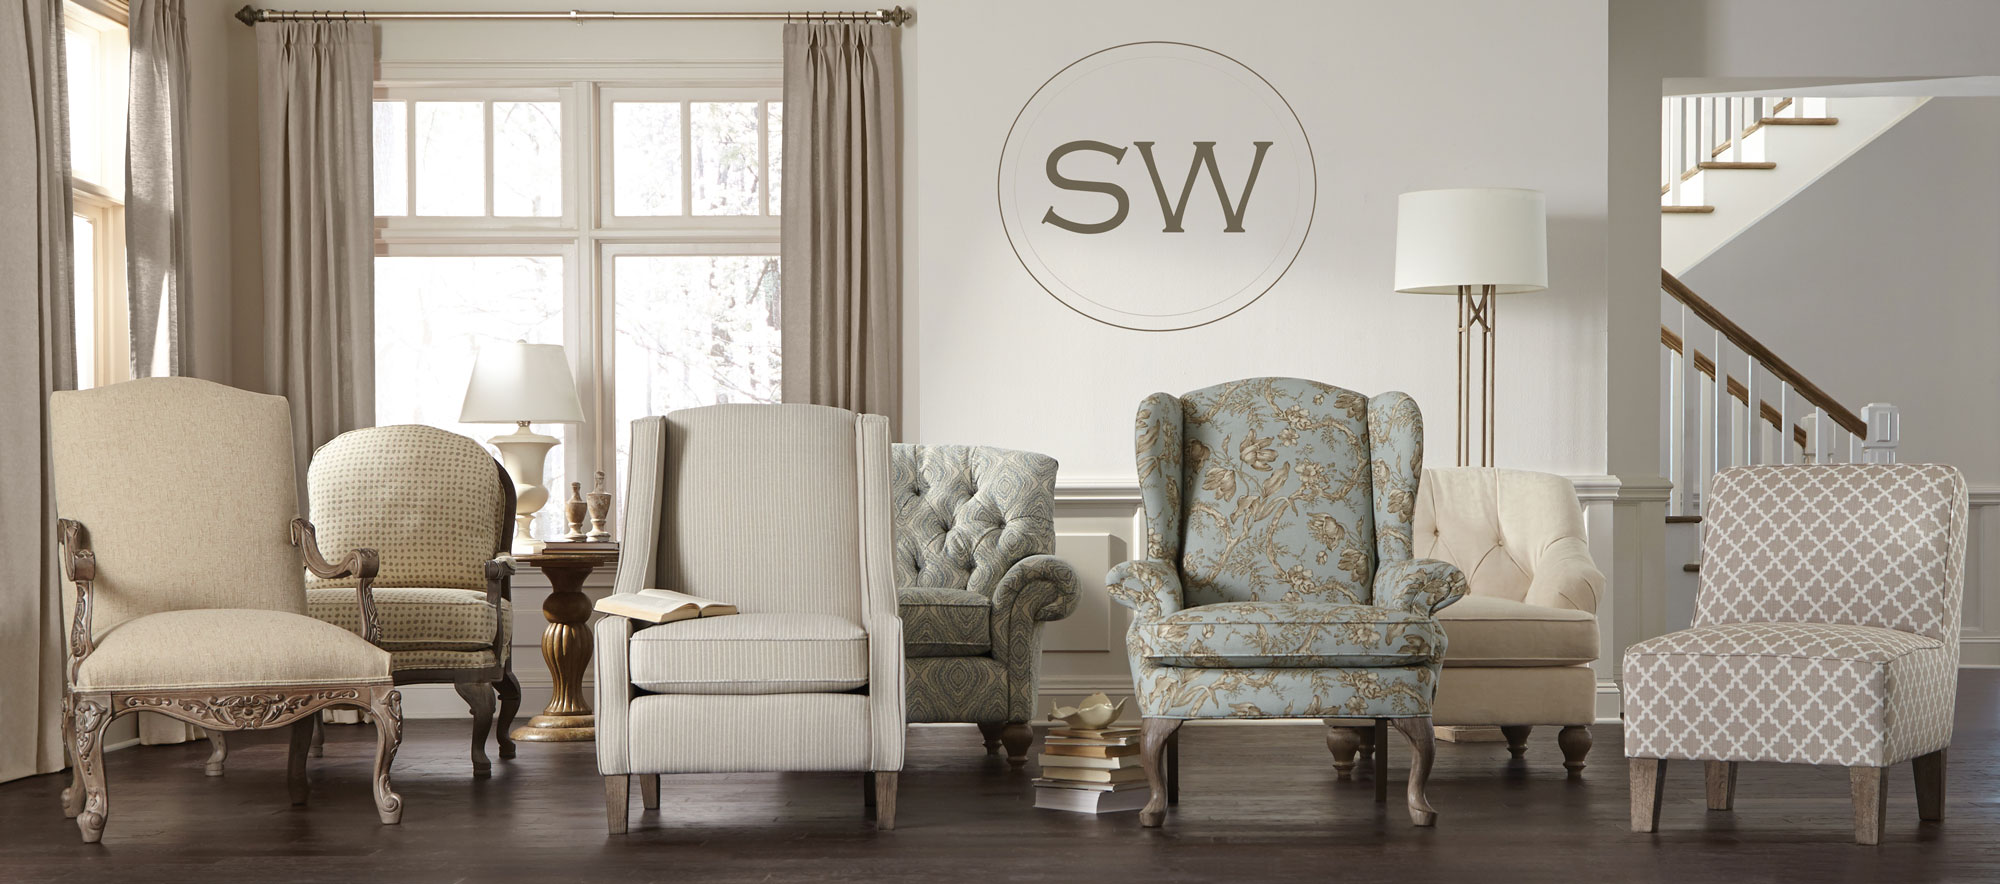 wide selection of stylish chairs at desert design center furniture stores in tucson